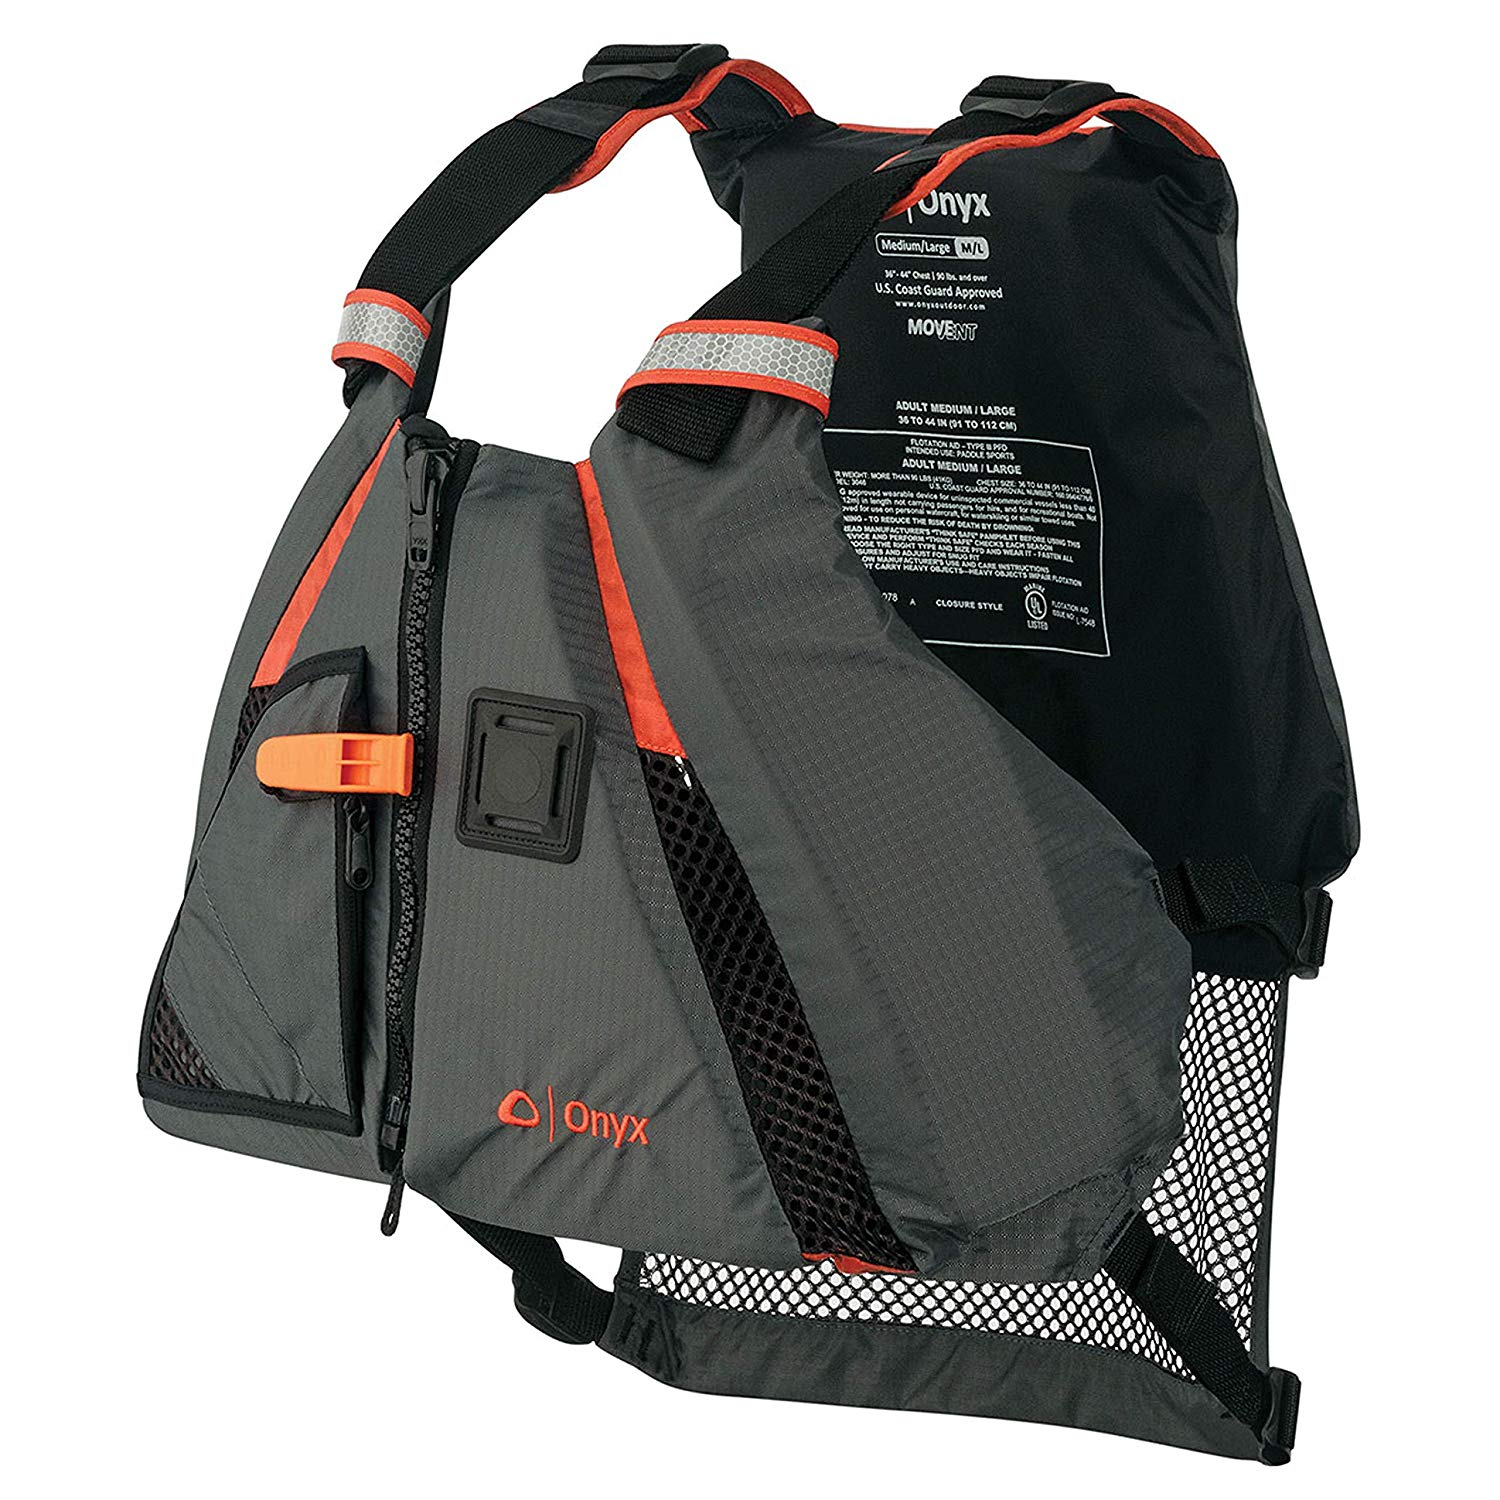 A top-rated life vest by Onyx, as found on Amazon.